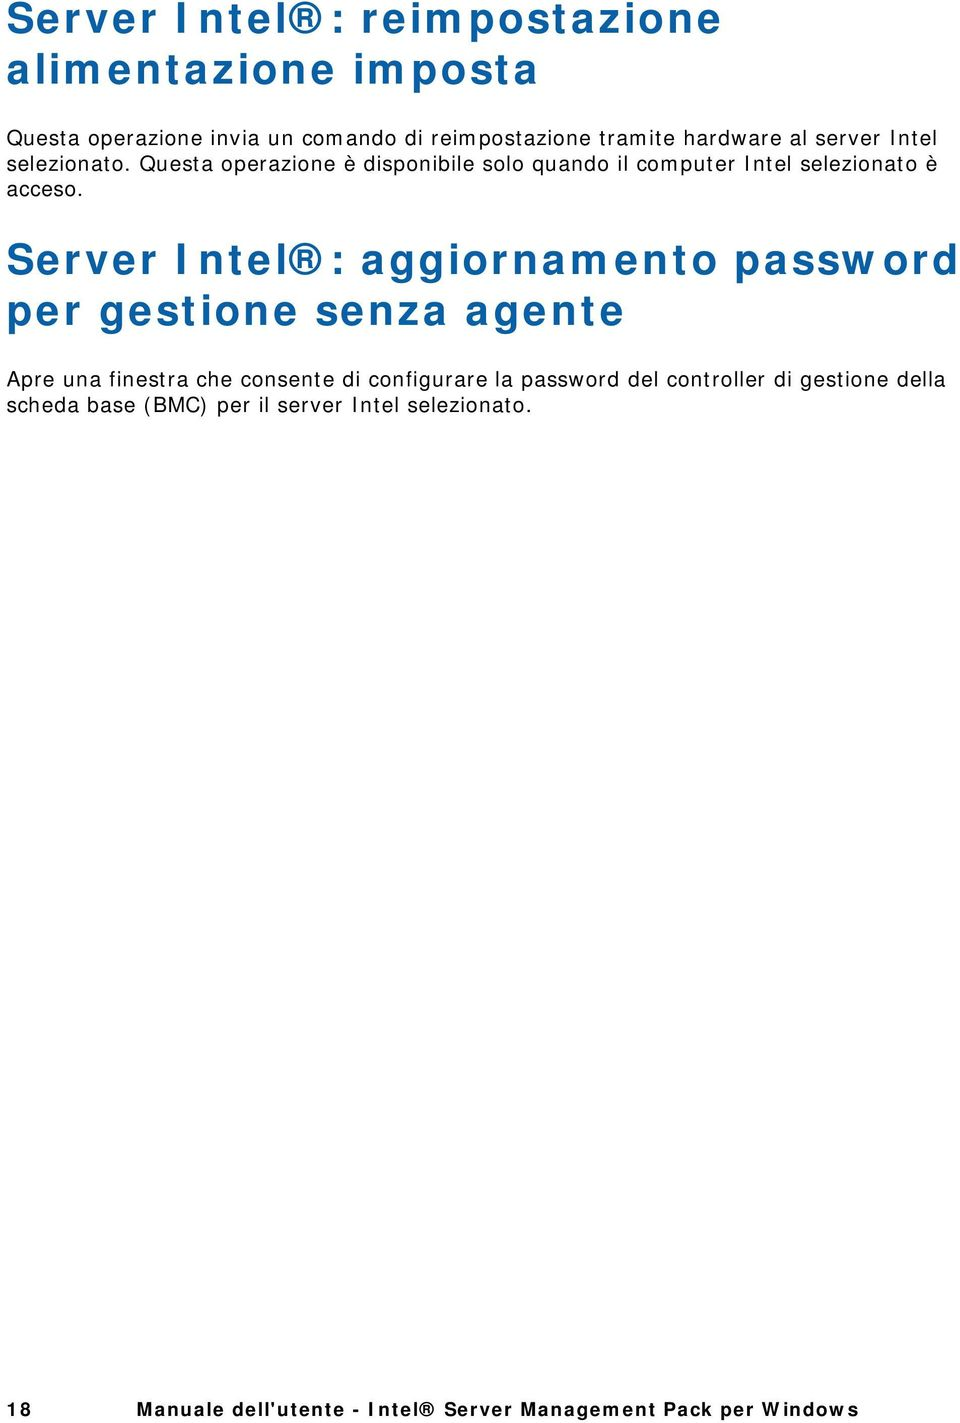 Server Intel : aggiornamento password per gestione senza agente Apre una finestra che consente di configurare la password del